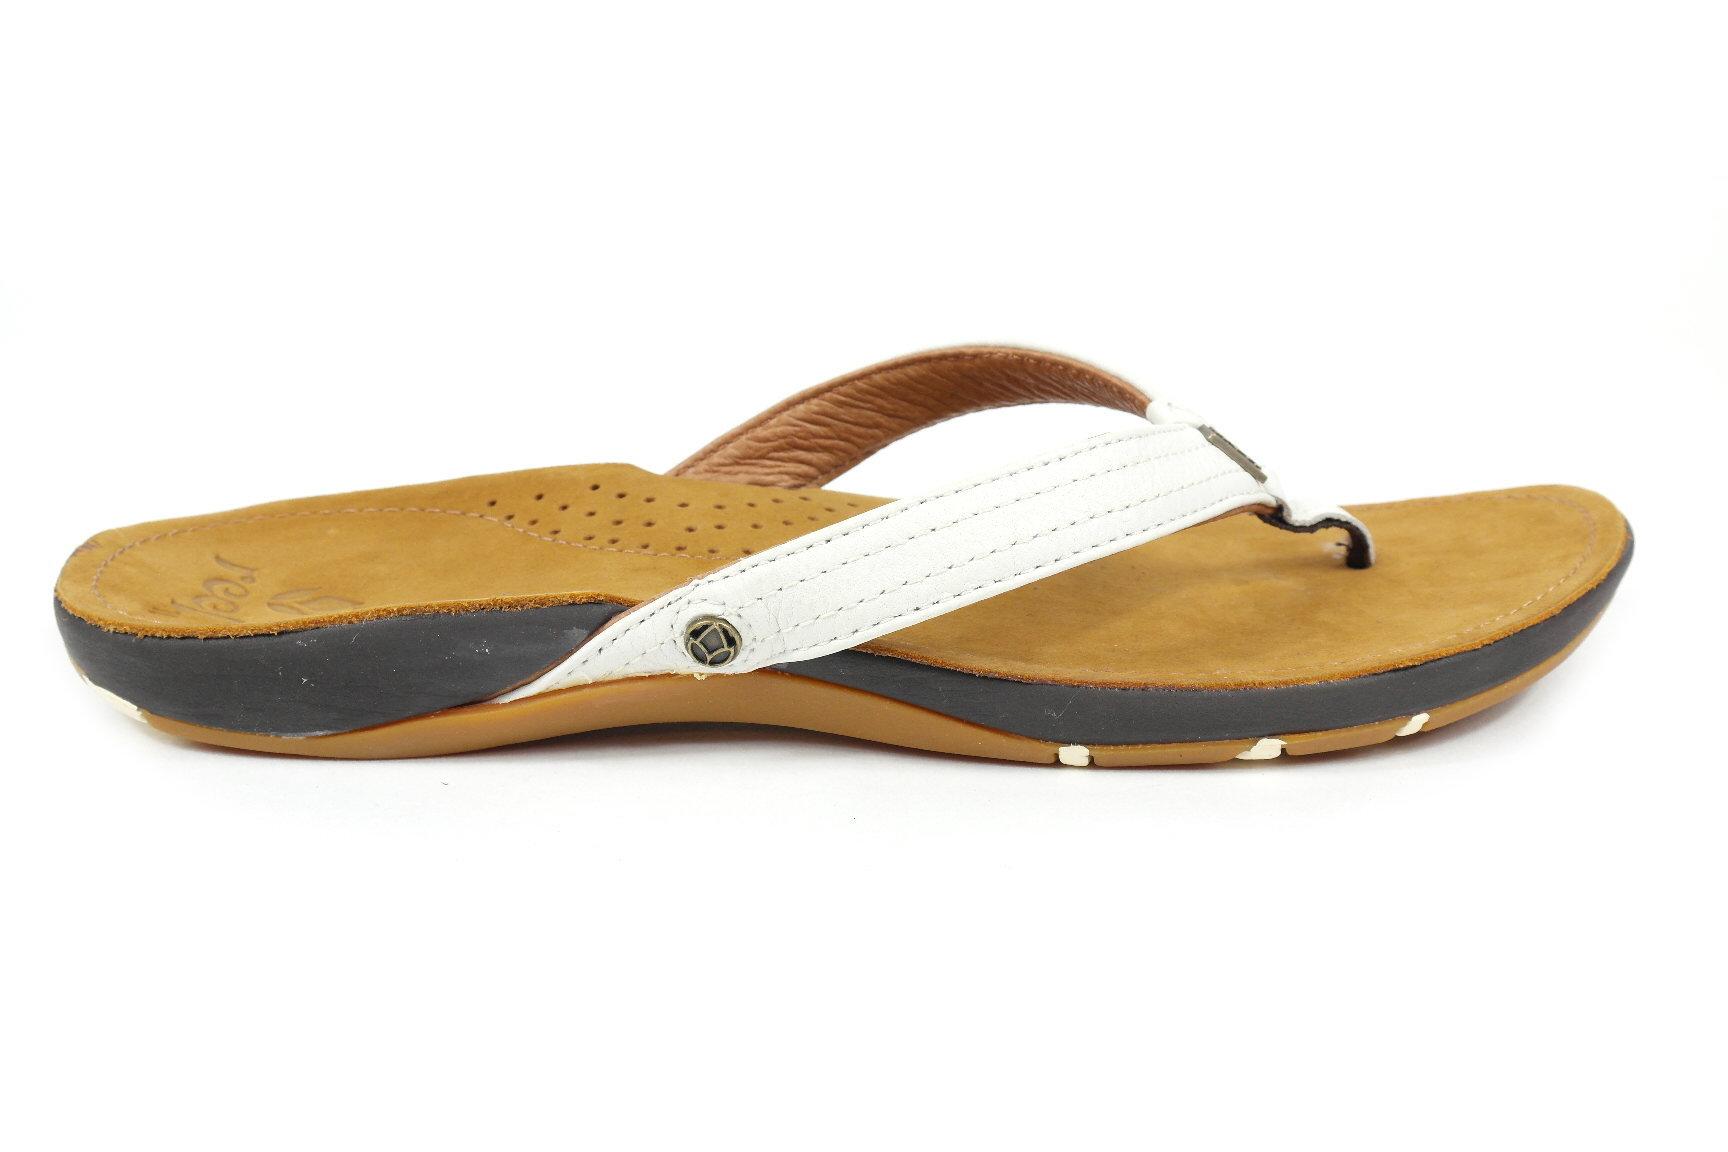 Stevige Schoenen Dames Reef Miss J-bay Dames Slippers Wit - Slippers & Sandalen